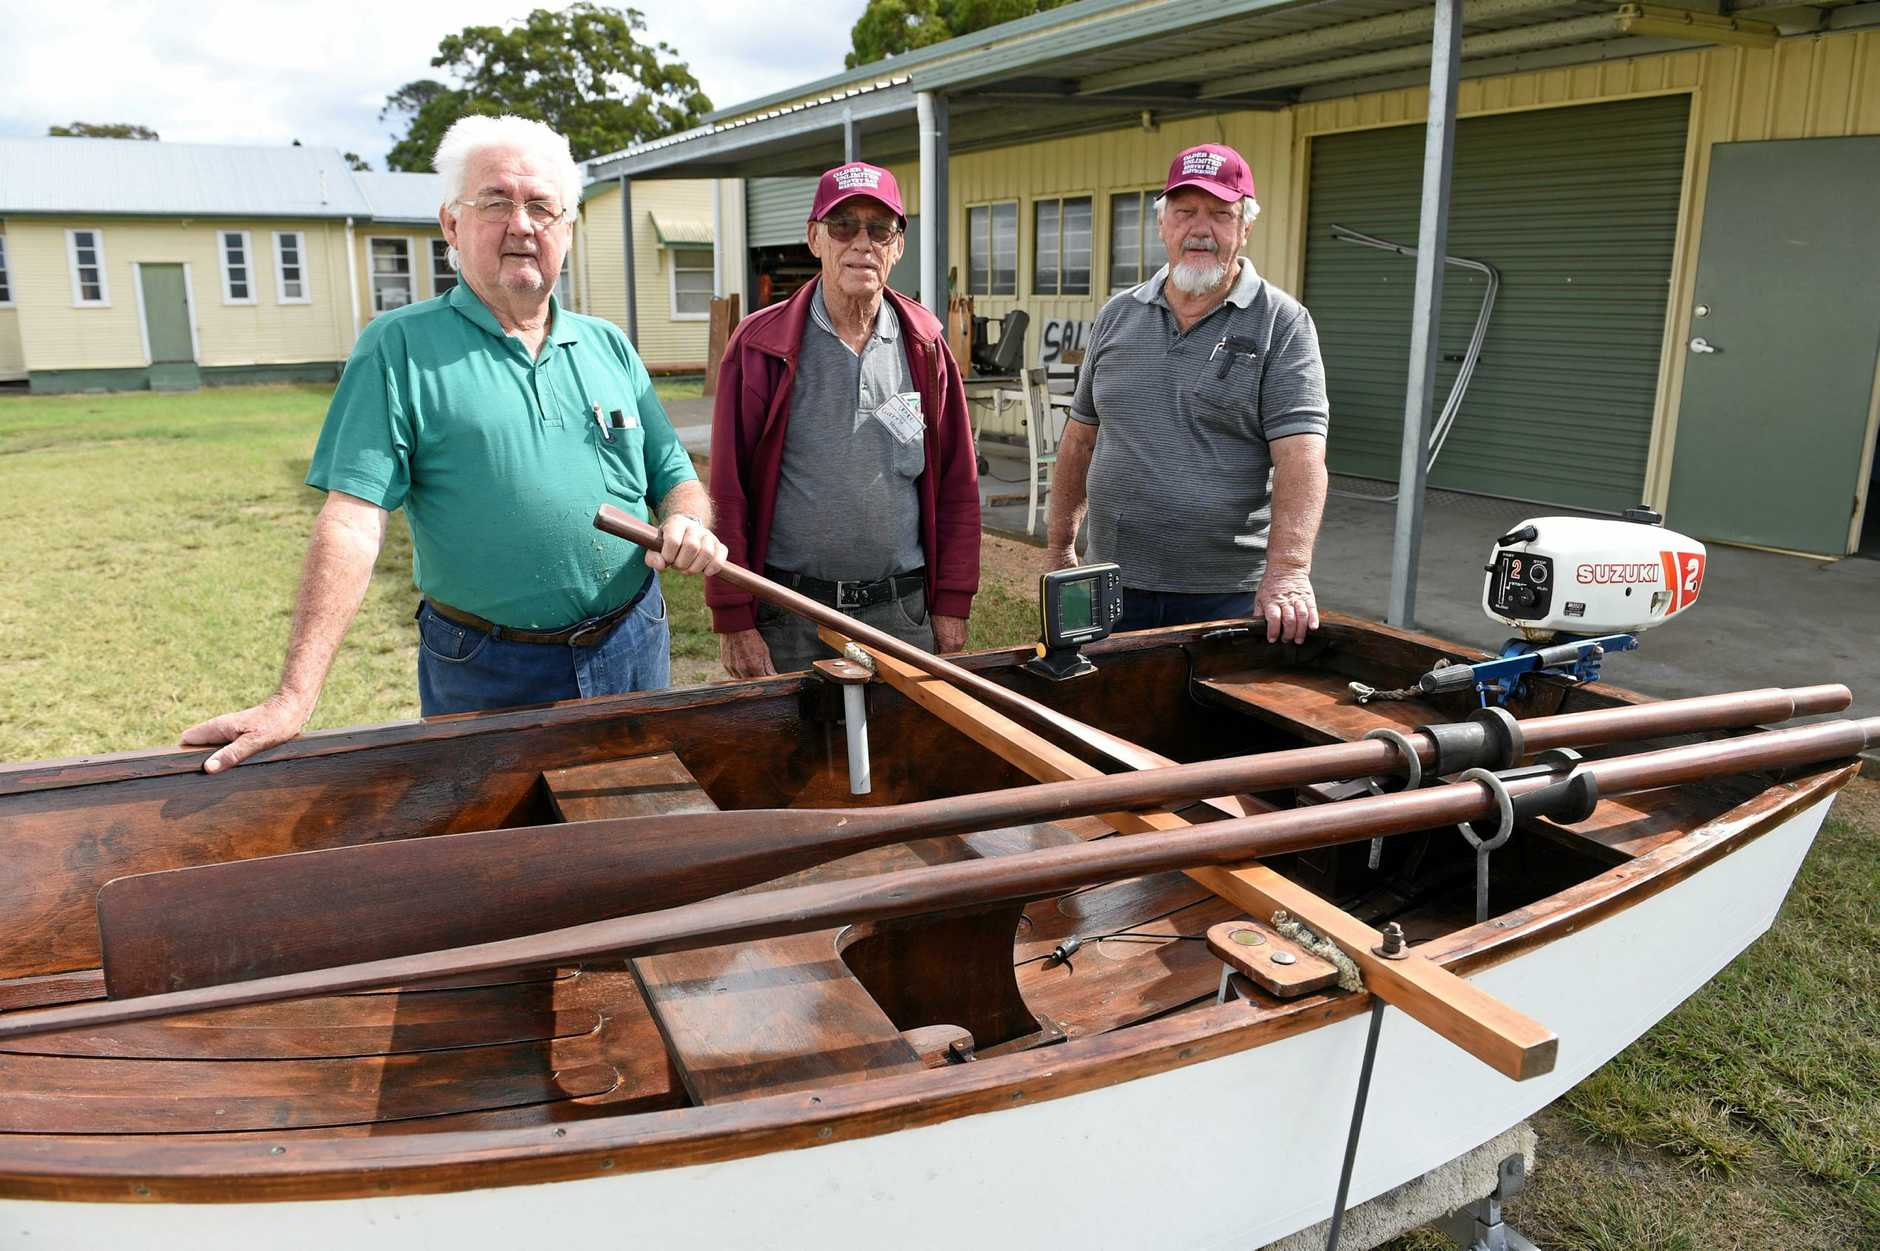 Older Men Unlimited Maryborough - (L) Frank Grant, Garry Monaghan and Theo Svensen with a boat they refurbished.